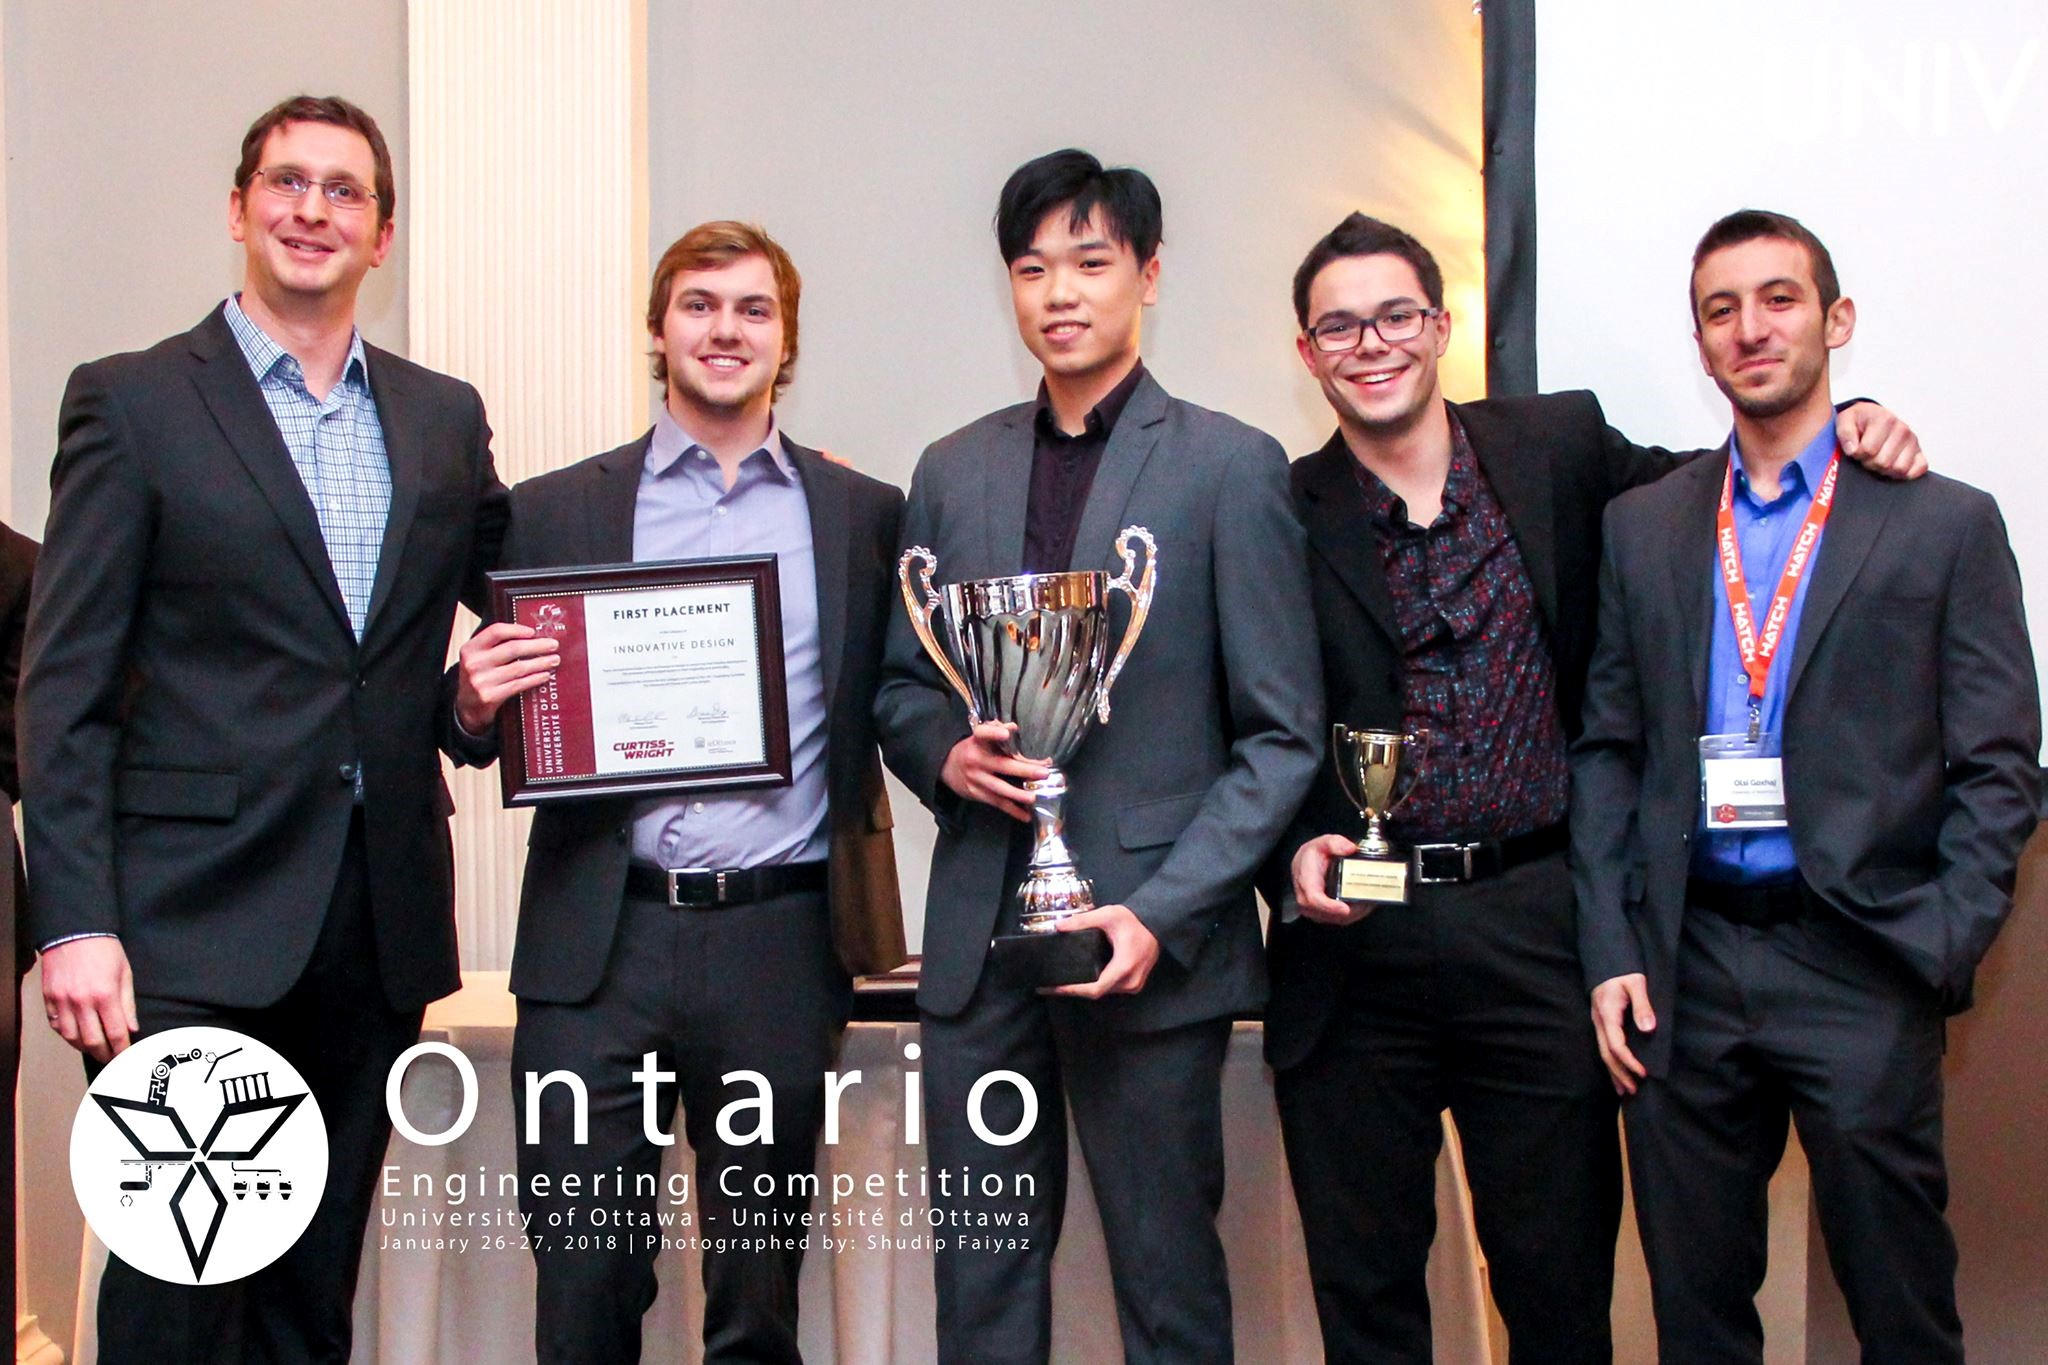 A judge for the 2018 Ontario Engineering Competition's Innovative Design category congratulates Waterloo chemical engineering st